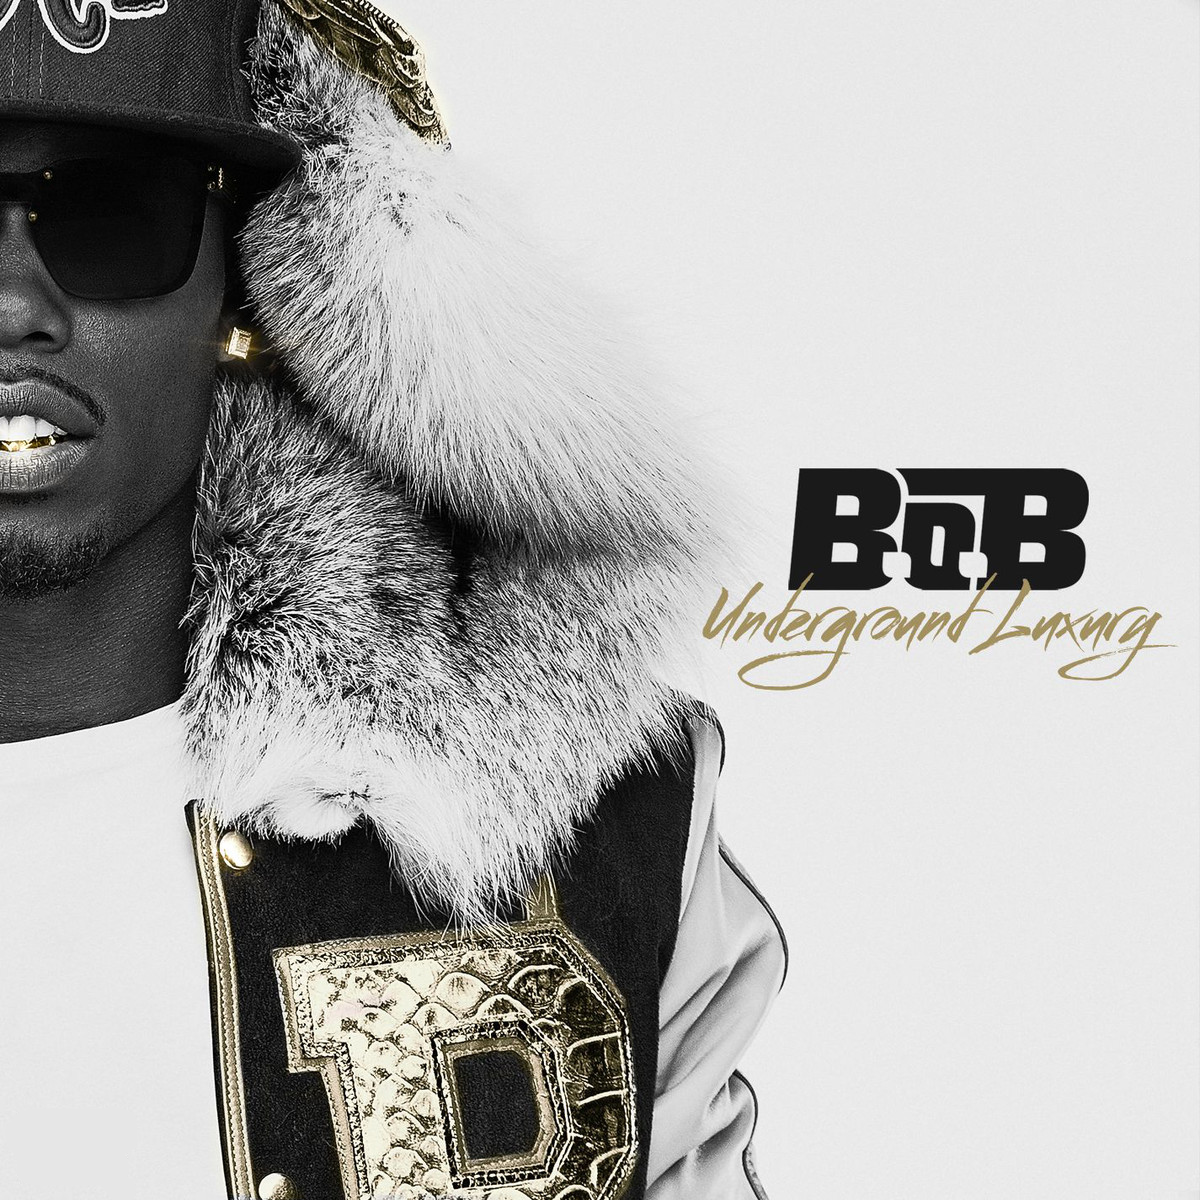 B.o.B - Underground Luxury 2013 iTunes [MP3] [Multi]